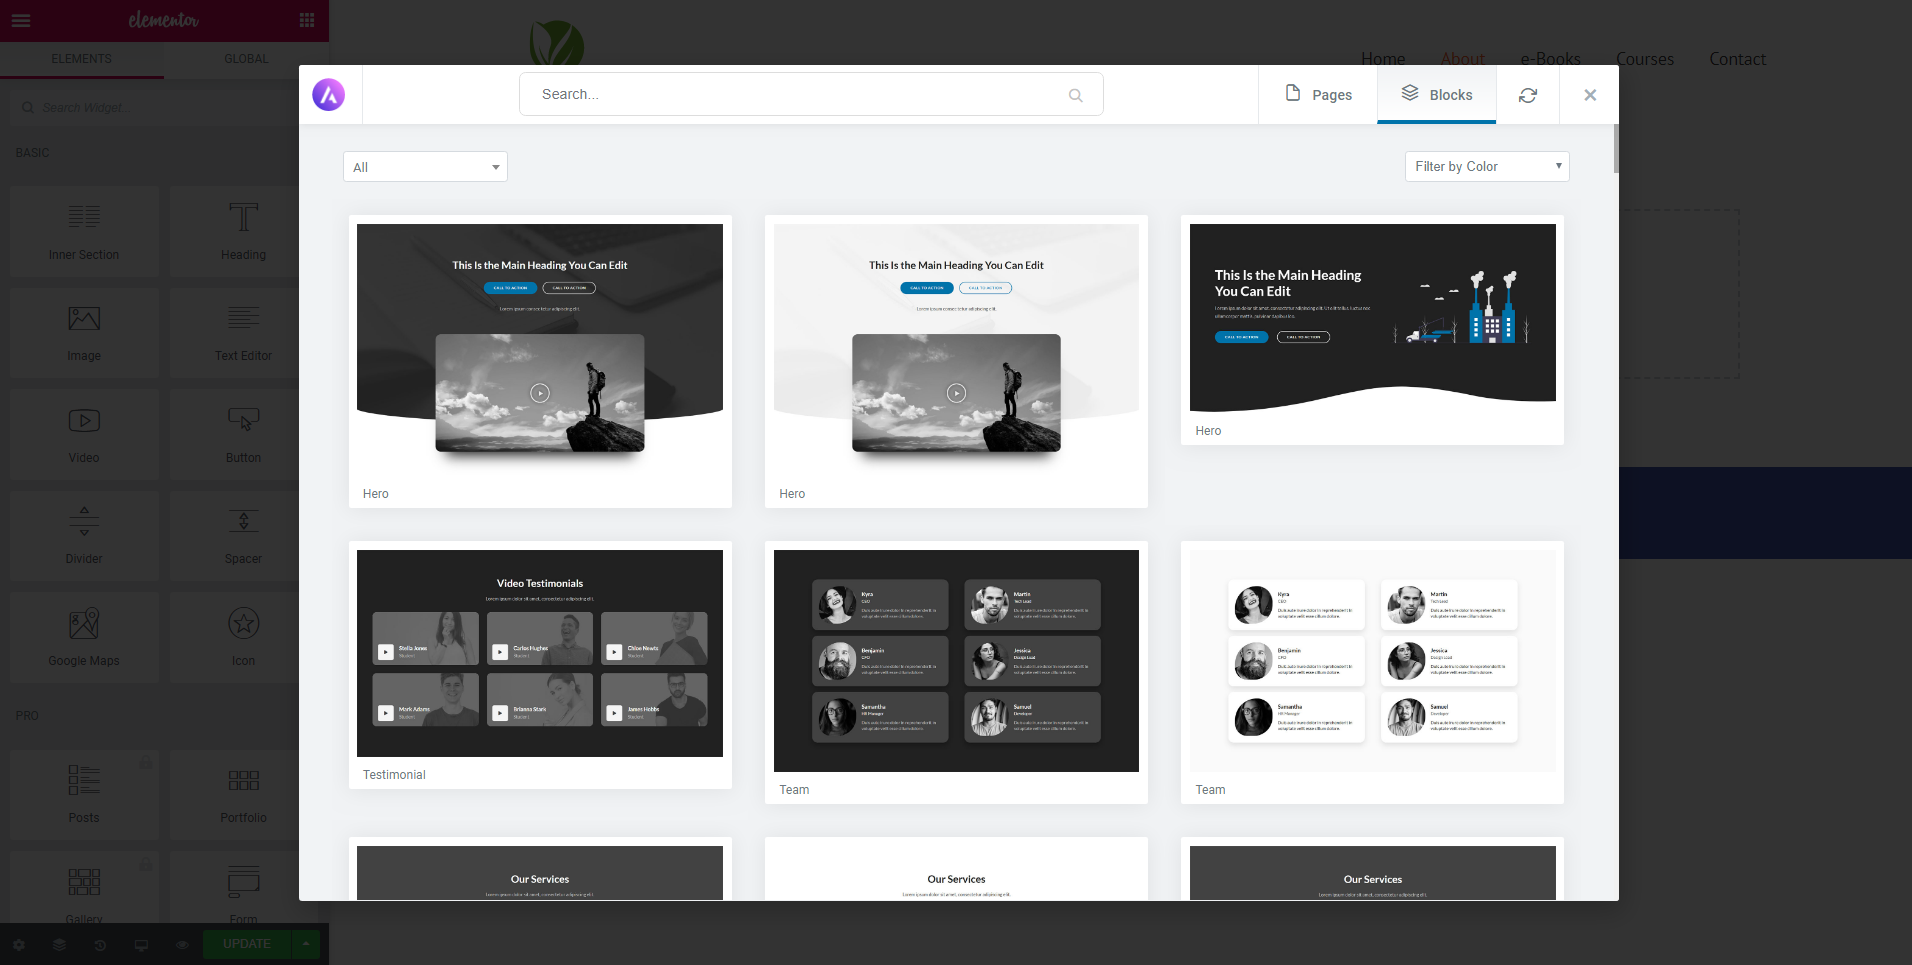 Free Images by Pixabay right inside the WordPress media popup.